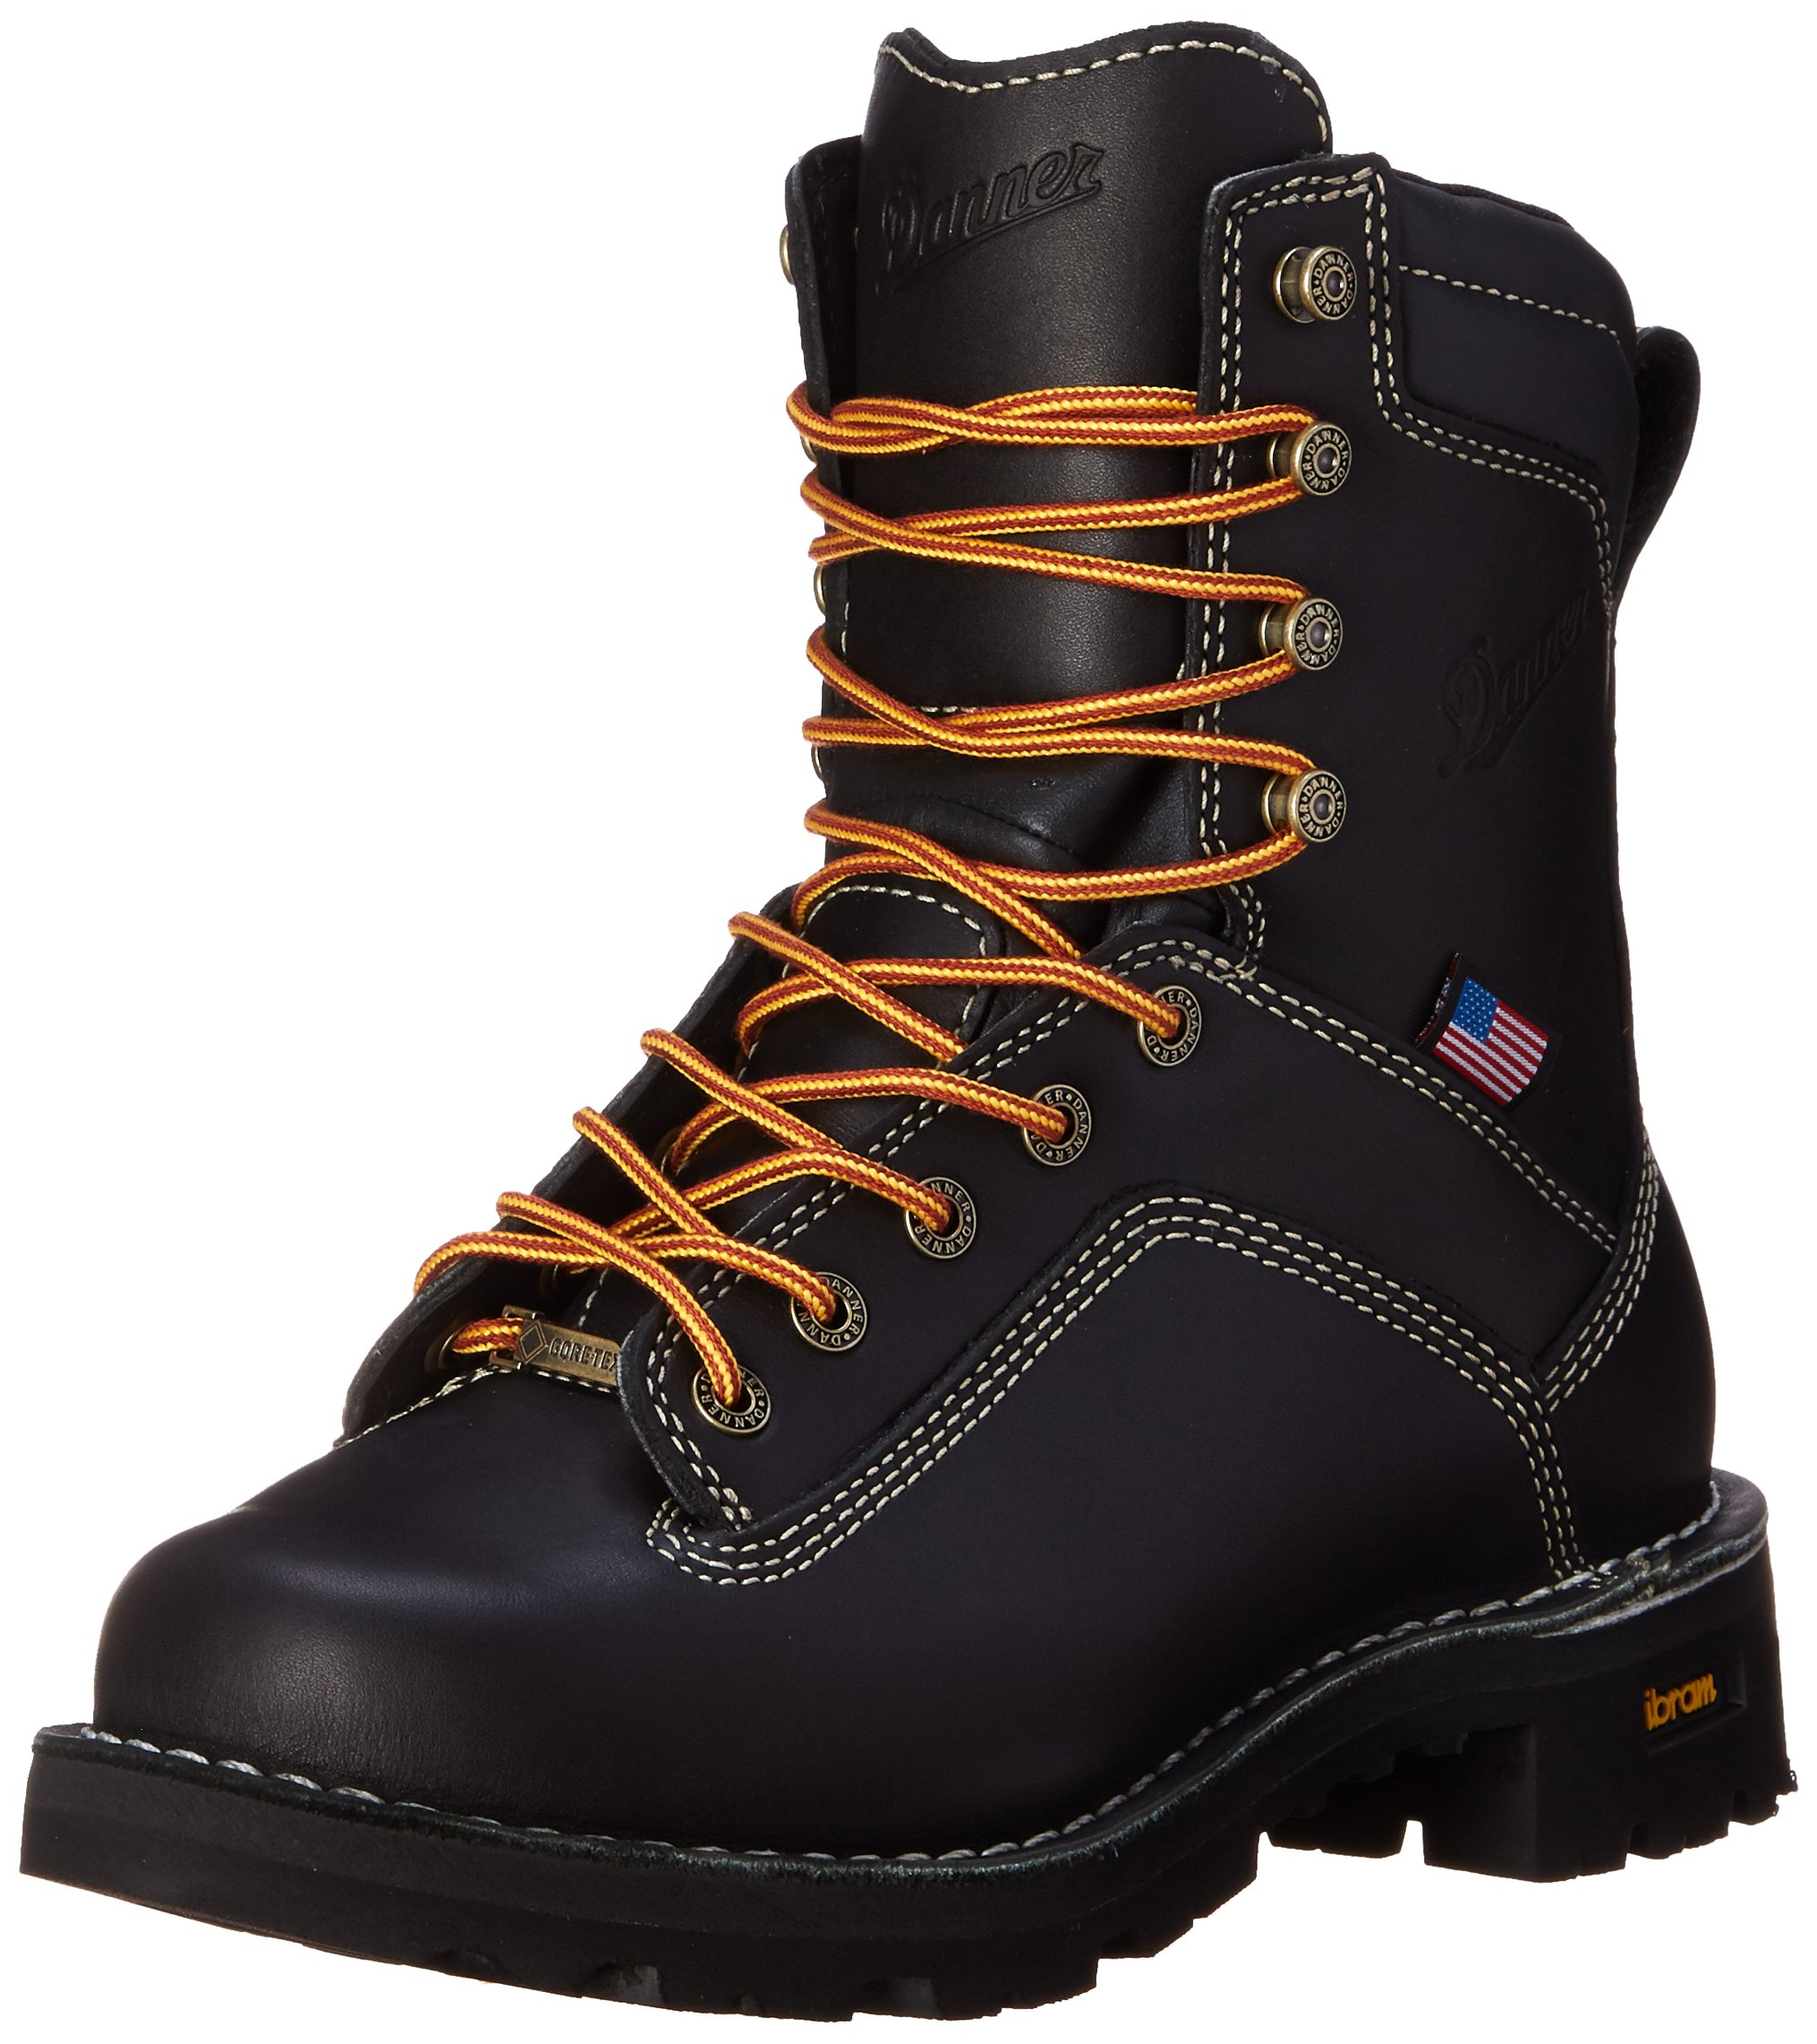 b2963e5bd1c3 Best Rated in Men s Industrial   Construction Boots   Helpful ...